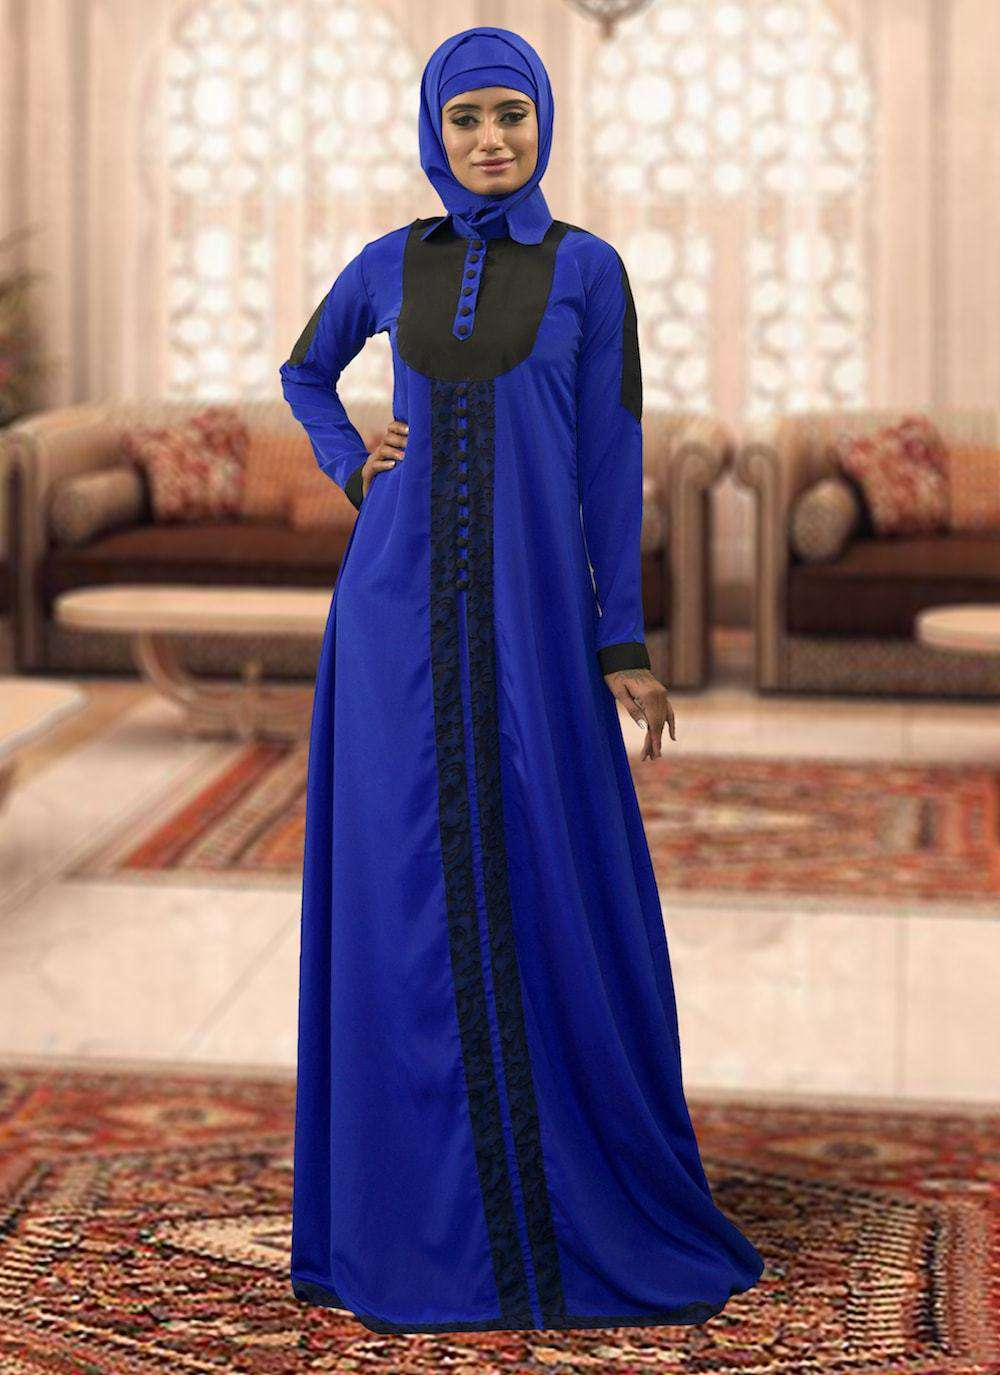 Blue and Black Handmade Arabic Style Islamic Dress MYPF1389